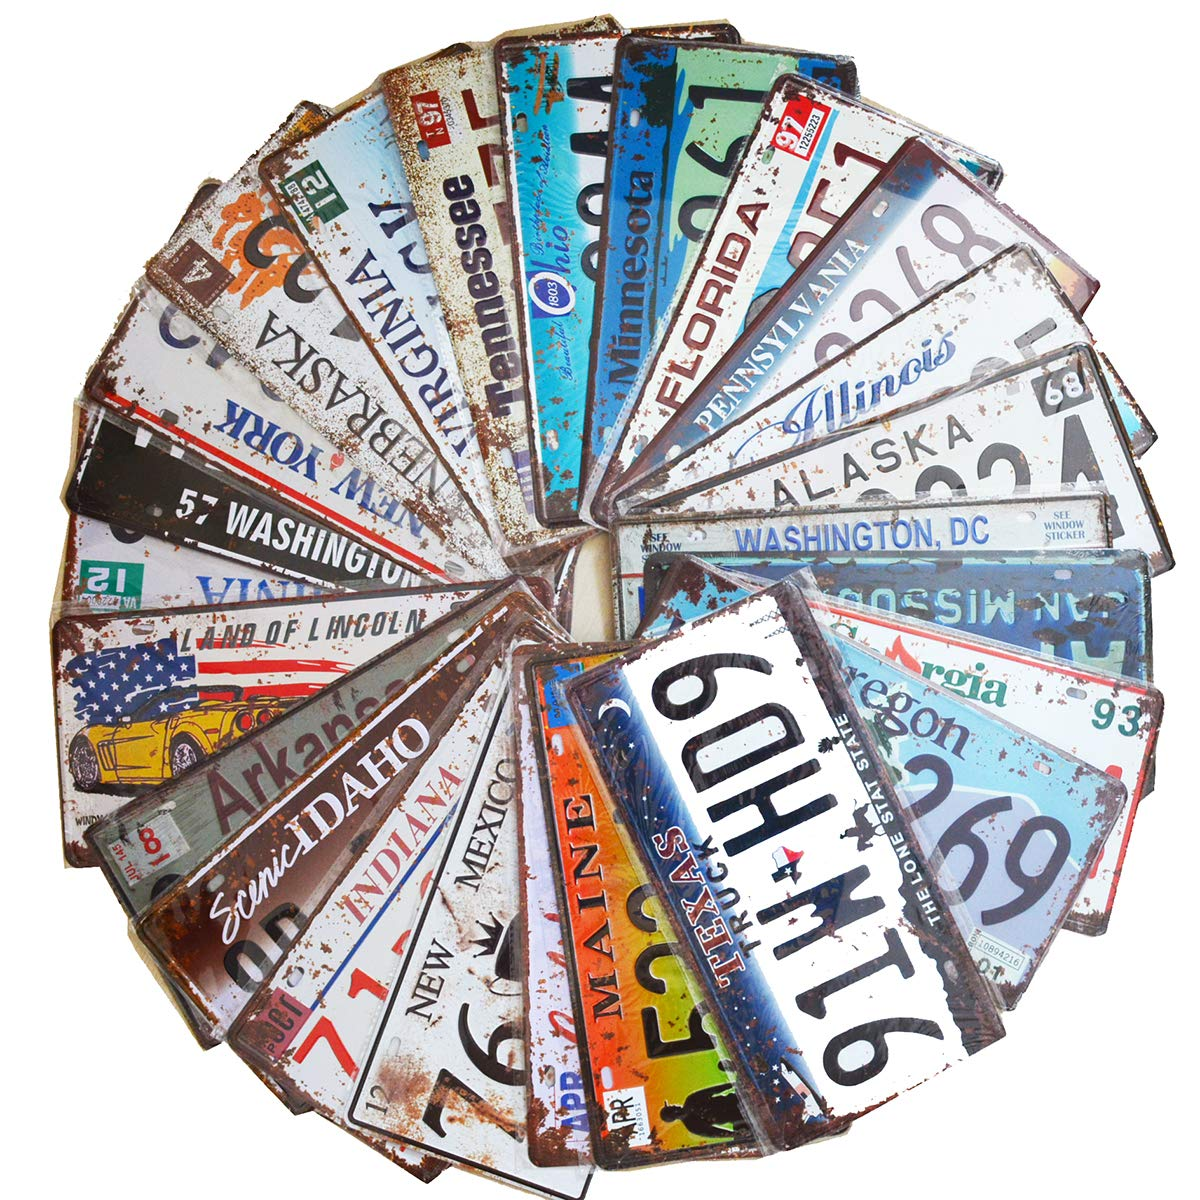 24 Pieces Assorted Retro Vintage Number Tags, Embossed License Plates, Home Wall Automobile Bar Garage Man Cave Decoration, 6x12 inch / 15x30cm by PEI's